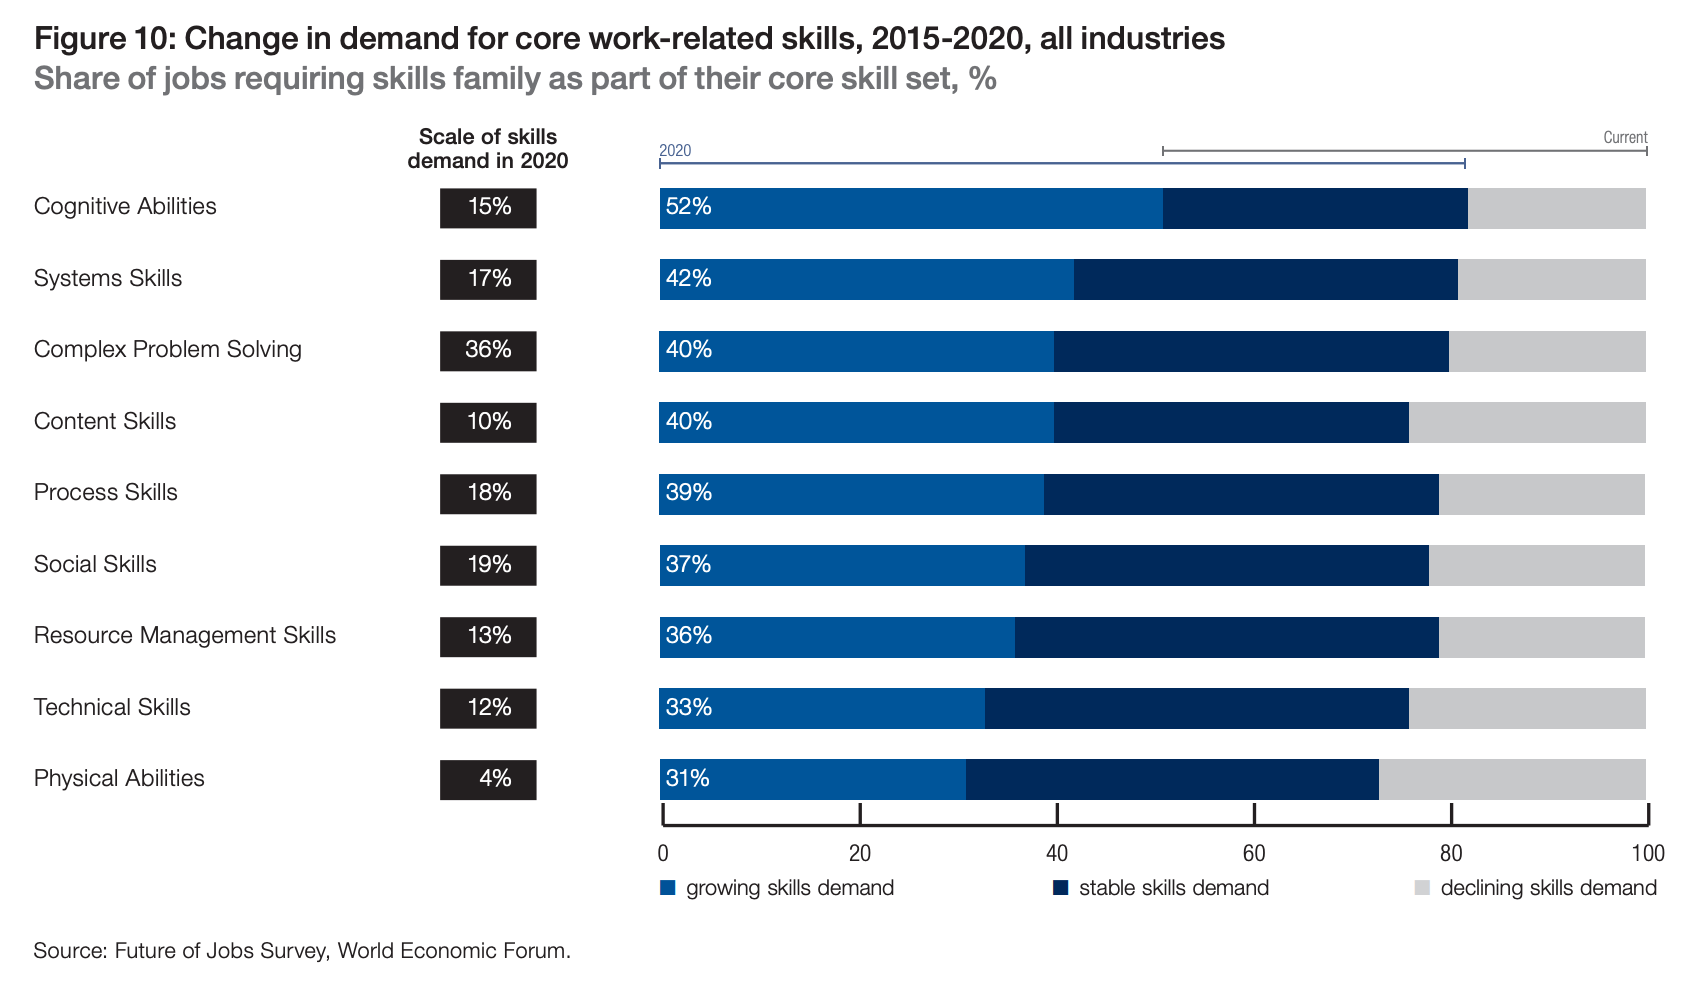 Change in demand for core work-related skills, 2015-2020